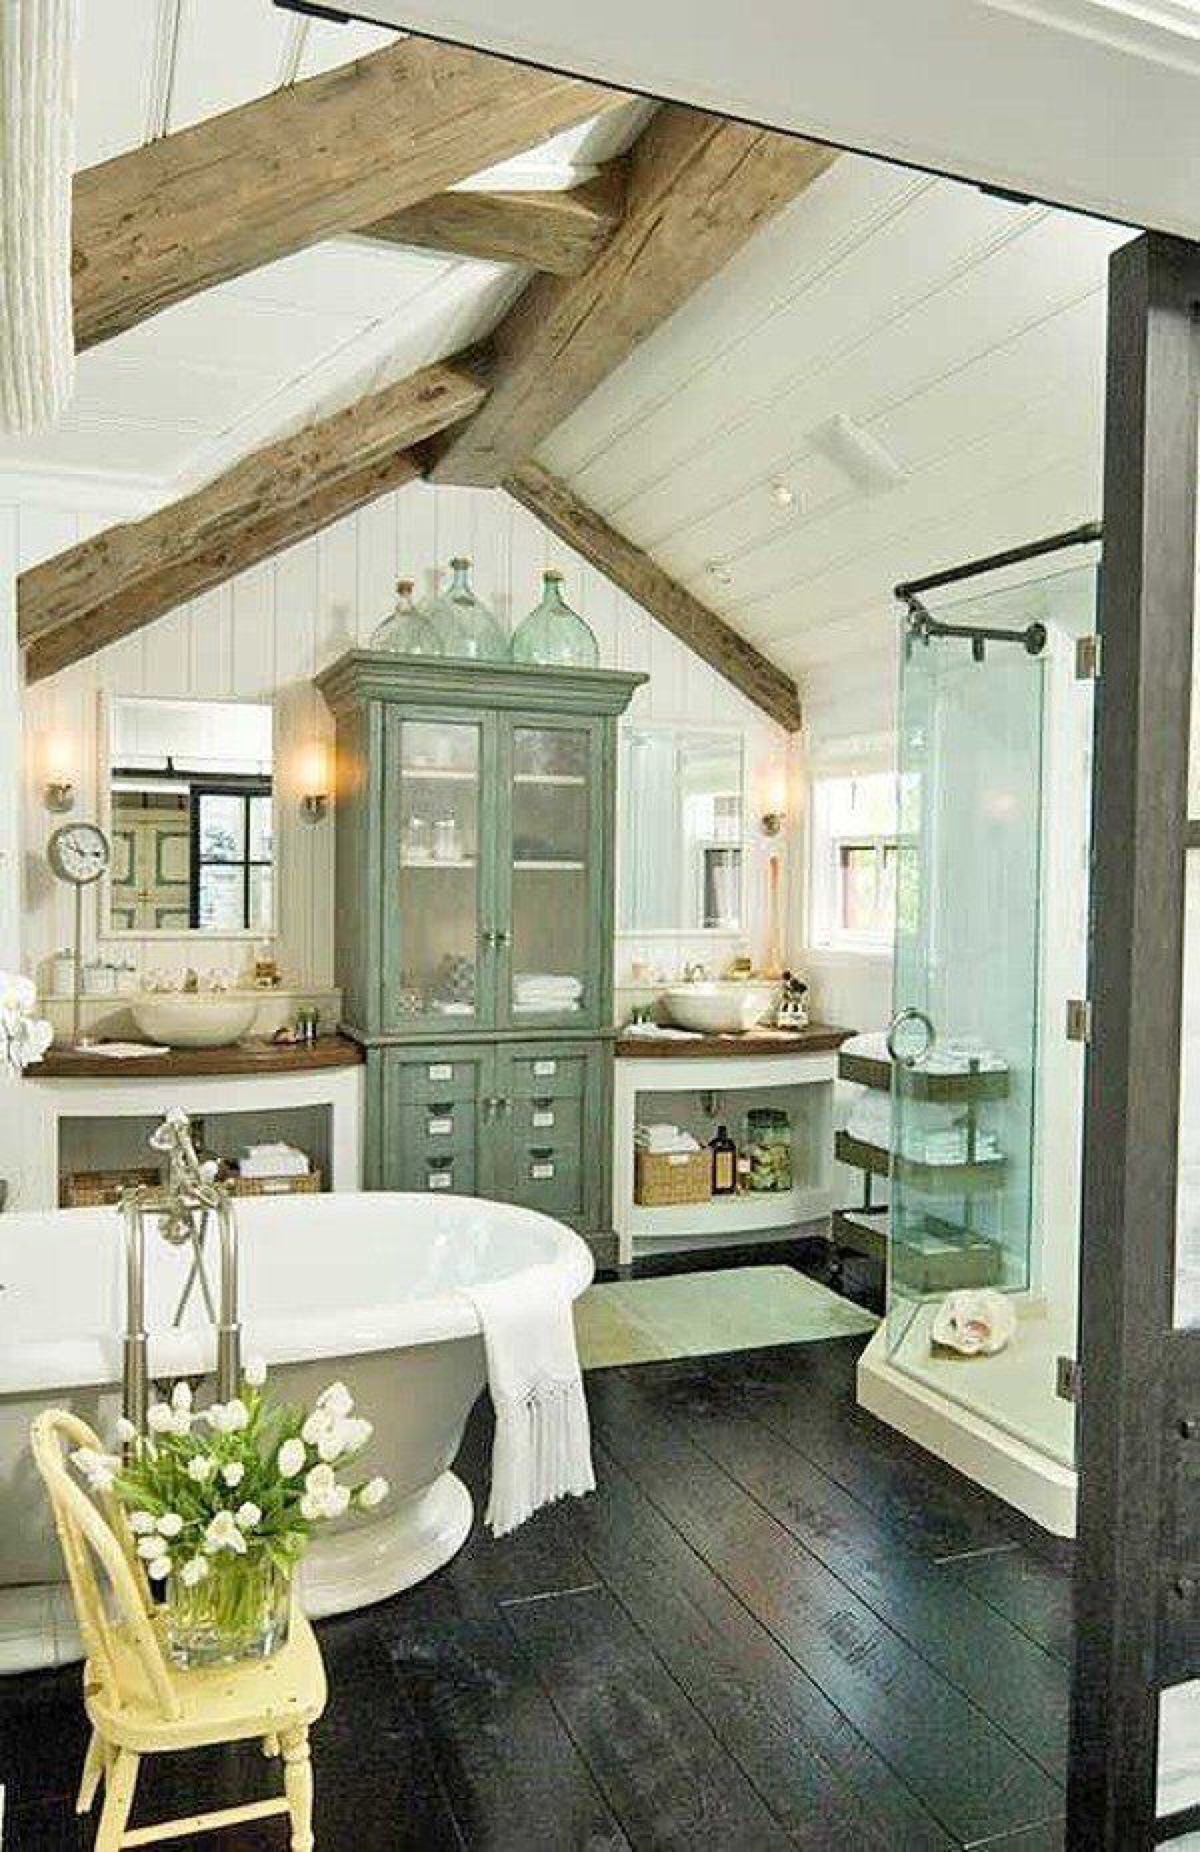 AD-Wonderful-Ideas-To-Design-Your-Space-With-Exposed-Wooden-Beams-27